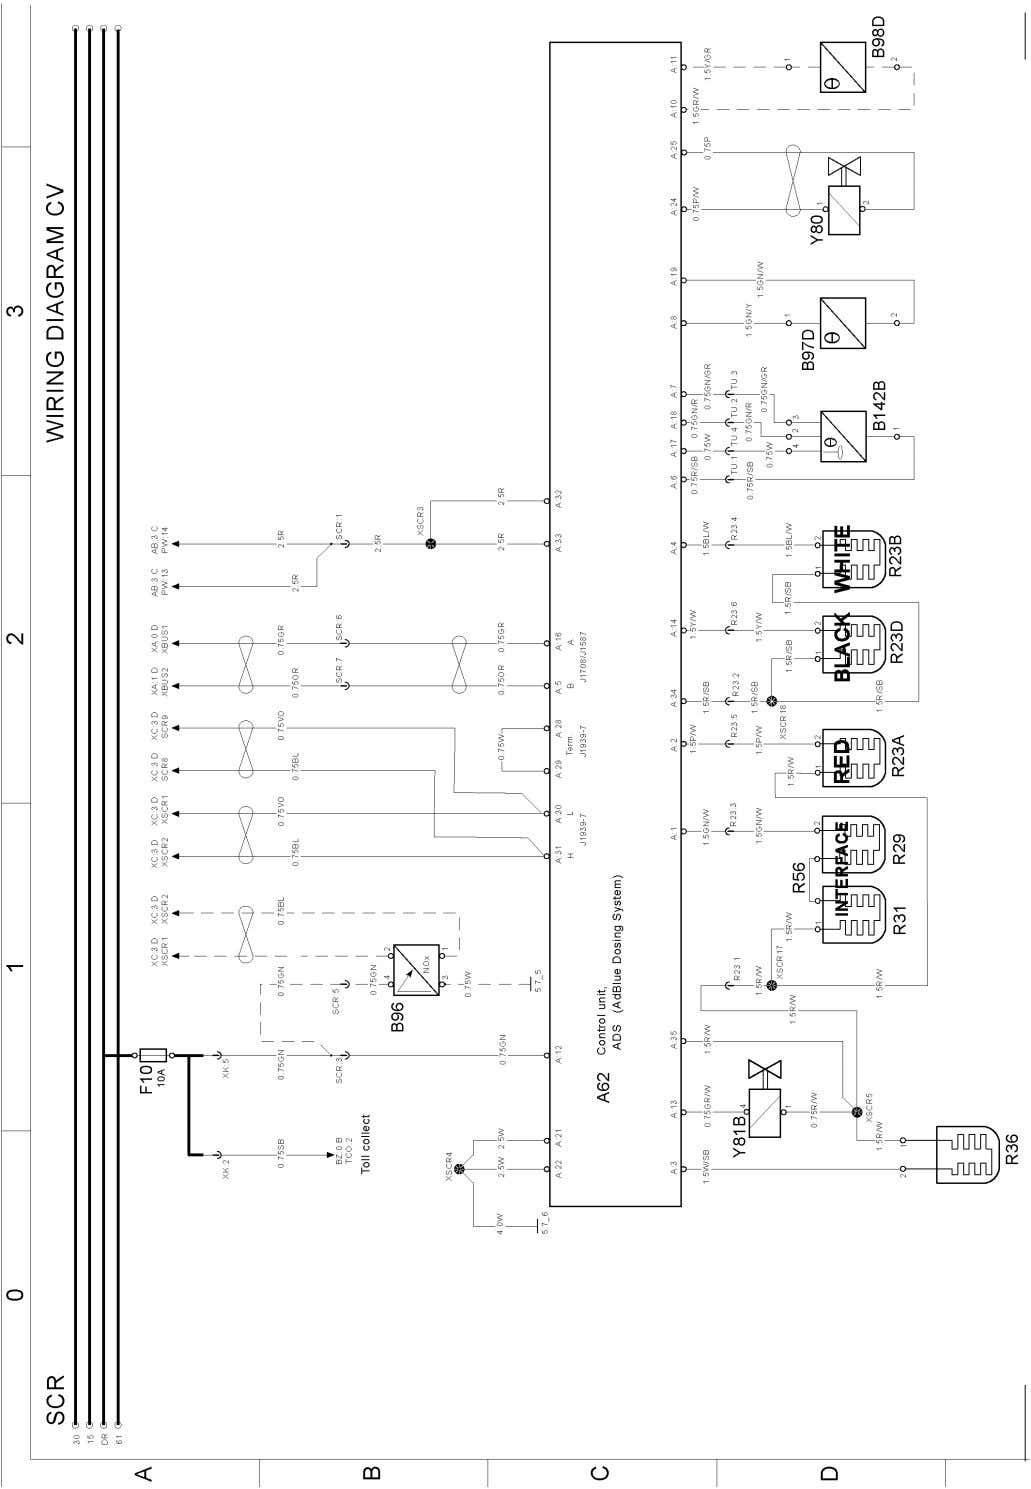 T3071634 Wiring diagram Page 33 (298)